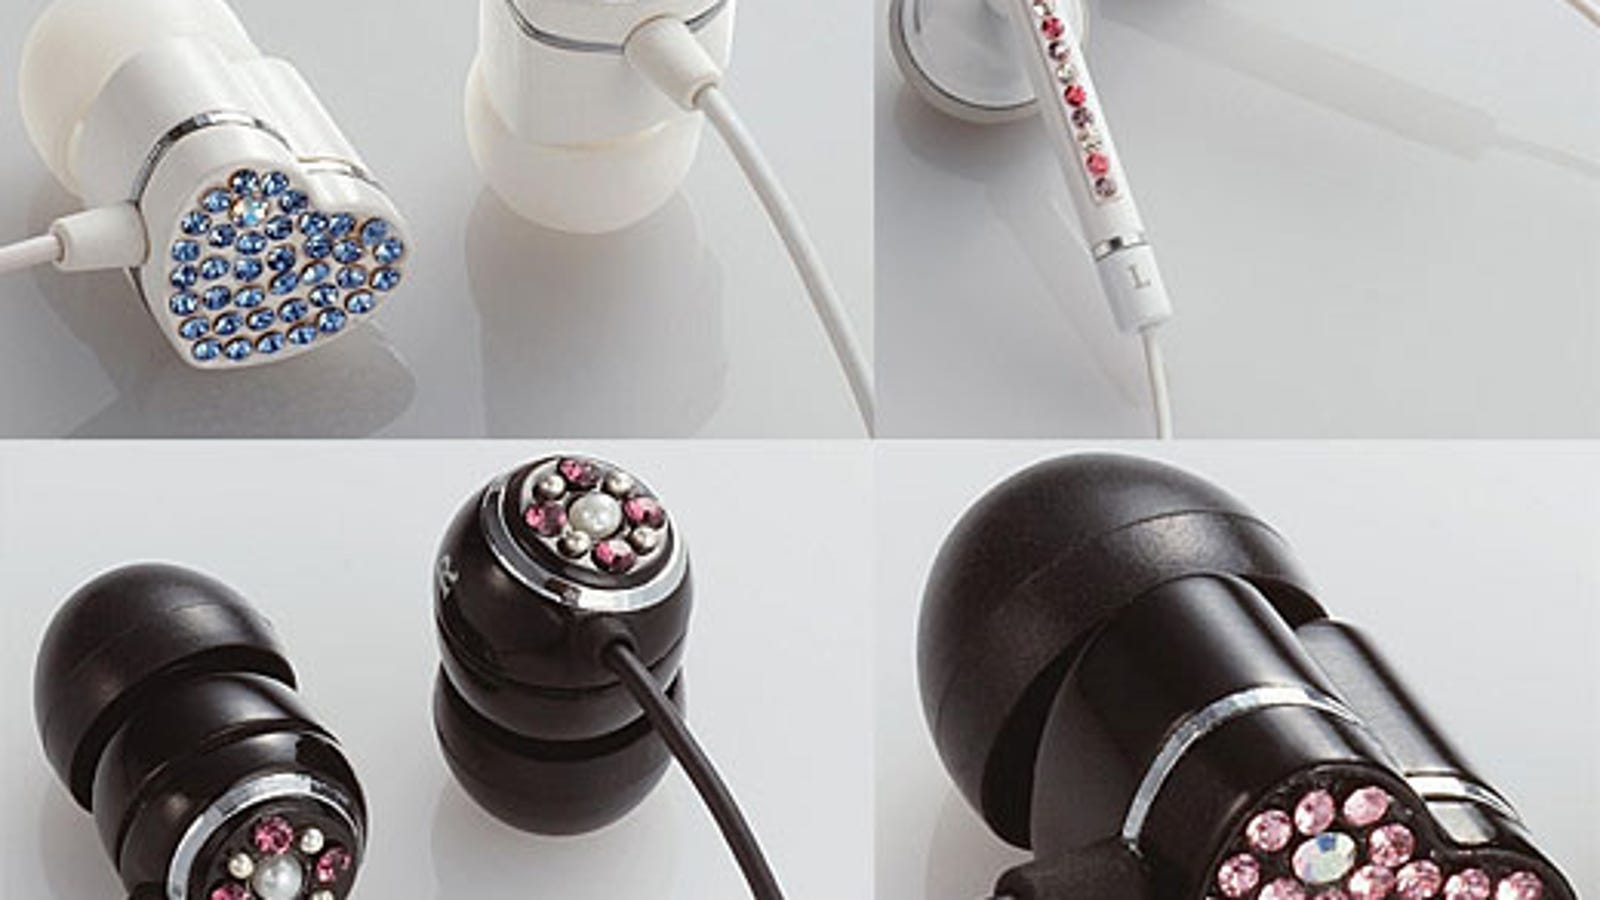 Elecom Ear Drops Earphones: Cheap Hookers Listen to Music, Too